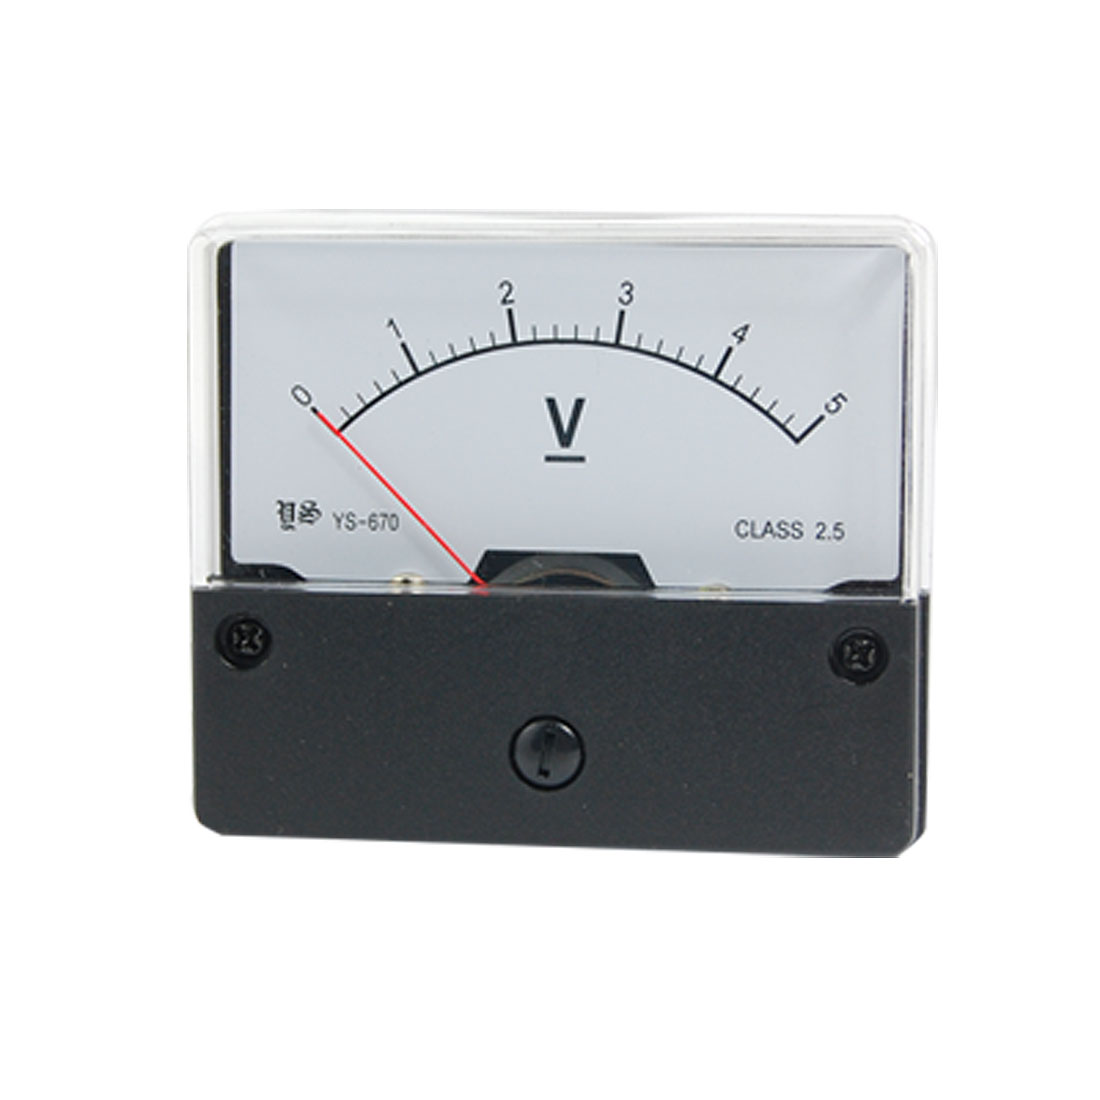 DC 0-5V Rectangle Analog Voltmeter Panel Meter Gauge YS-670